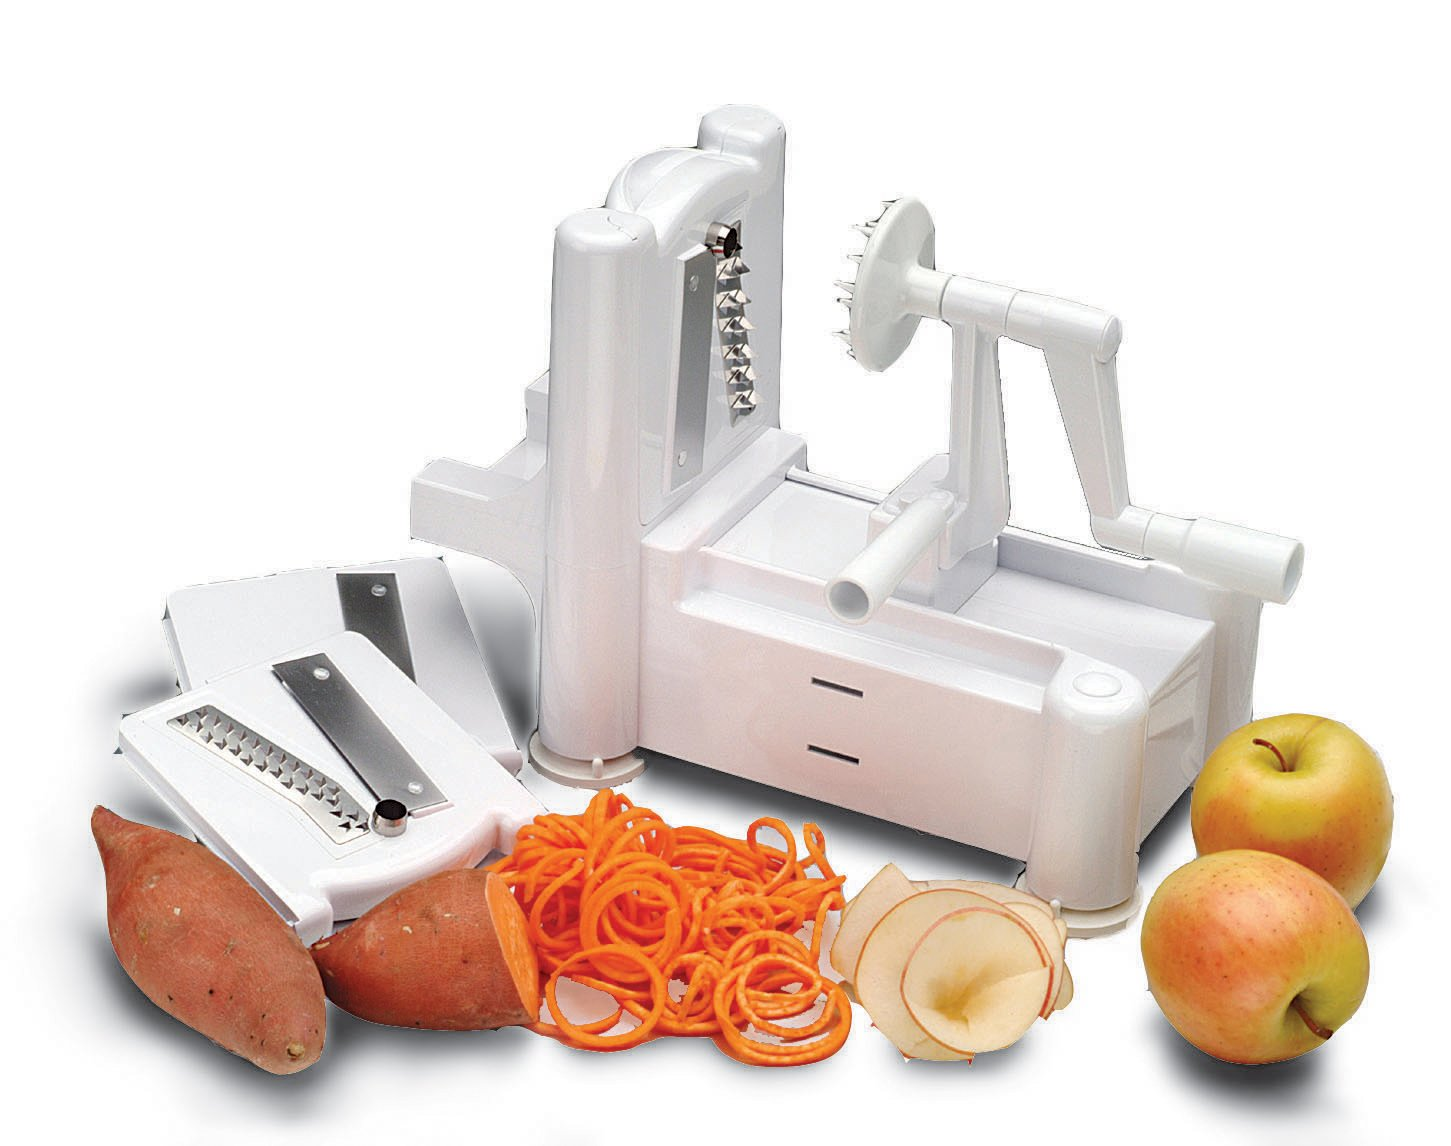 Paderno World Cuisine A4982799 Tri-Blade Plastic Spiral Vegetable Slicer $36.30